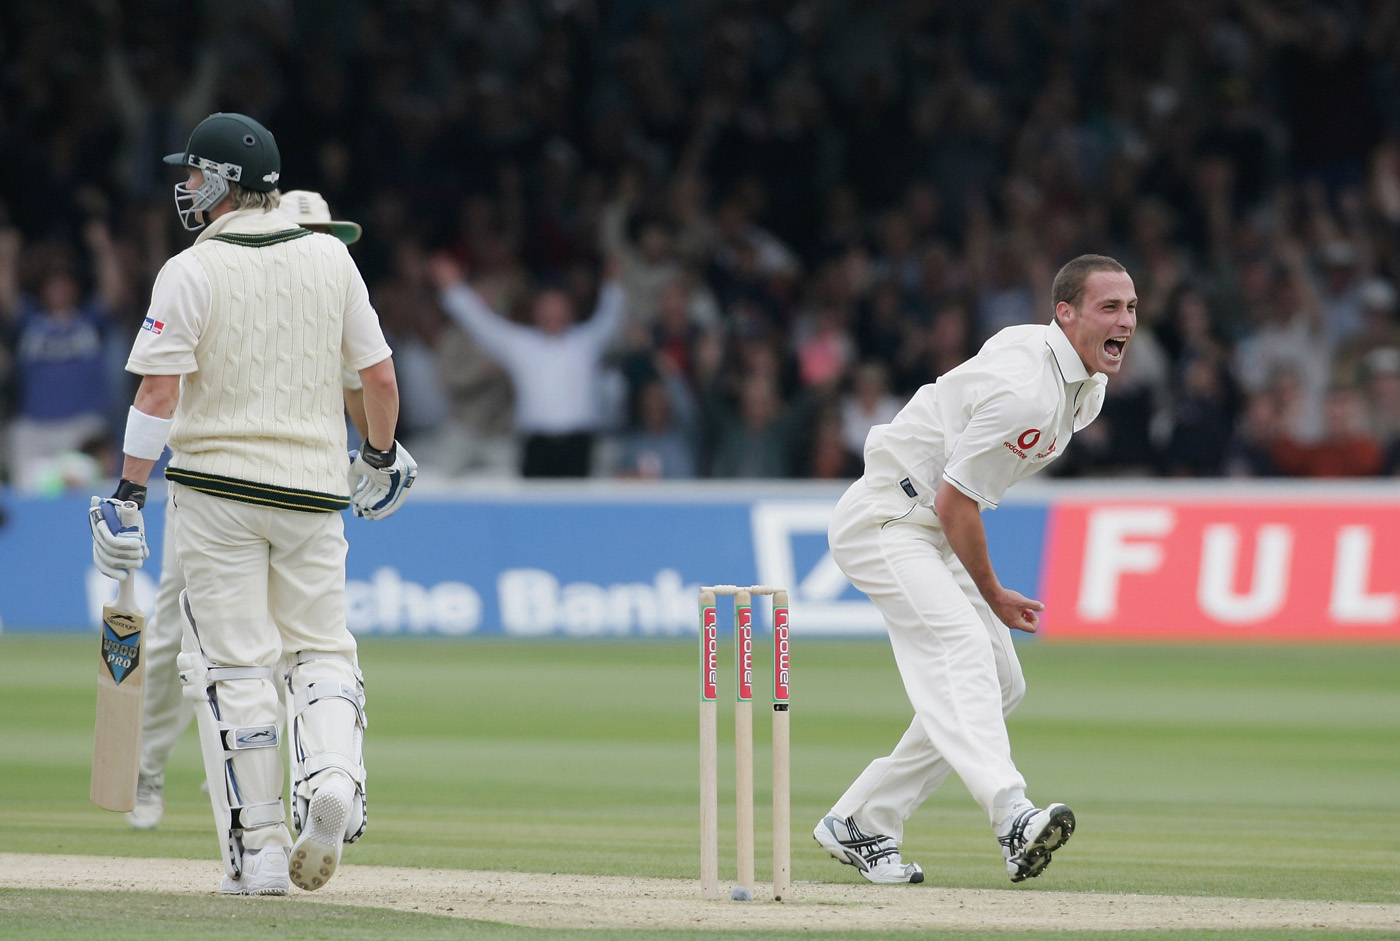 Simon Jones gets Michael Clarke at Edgbaston in 2005: